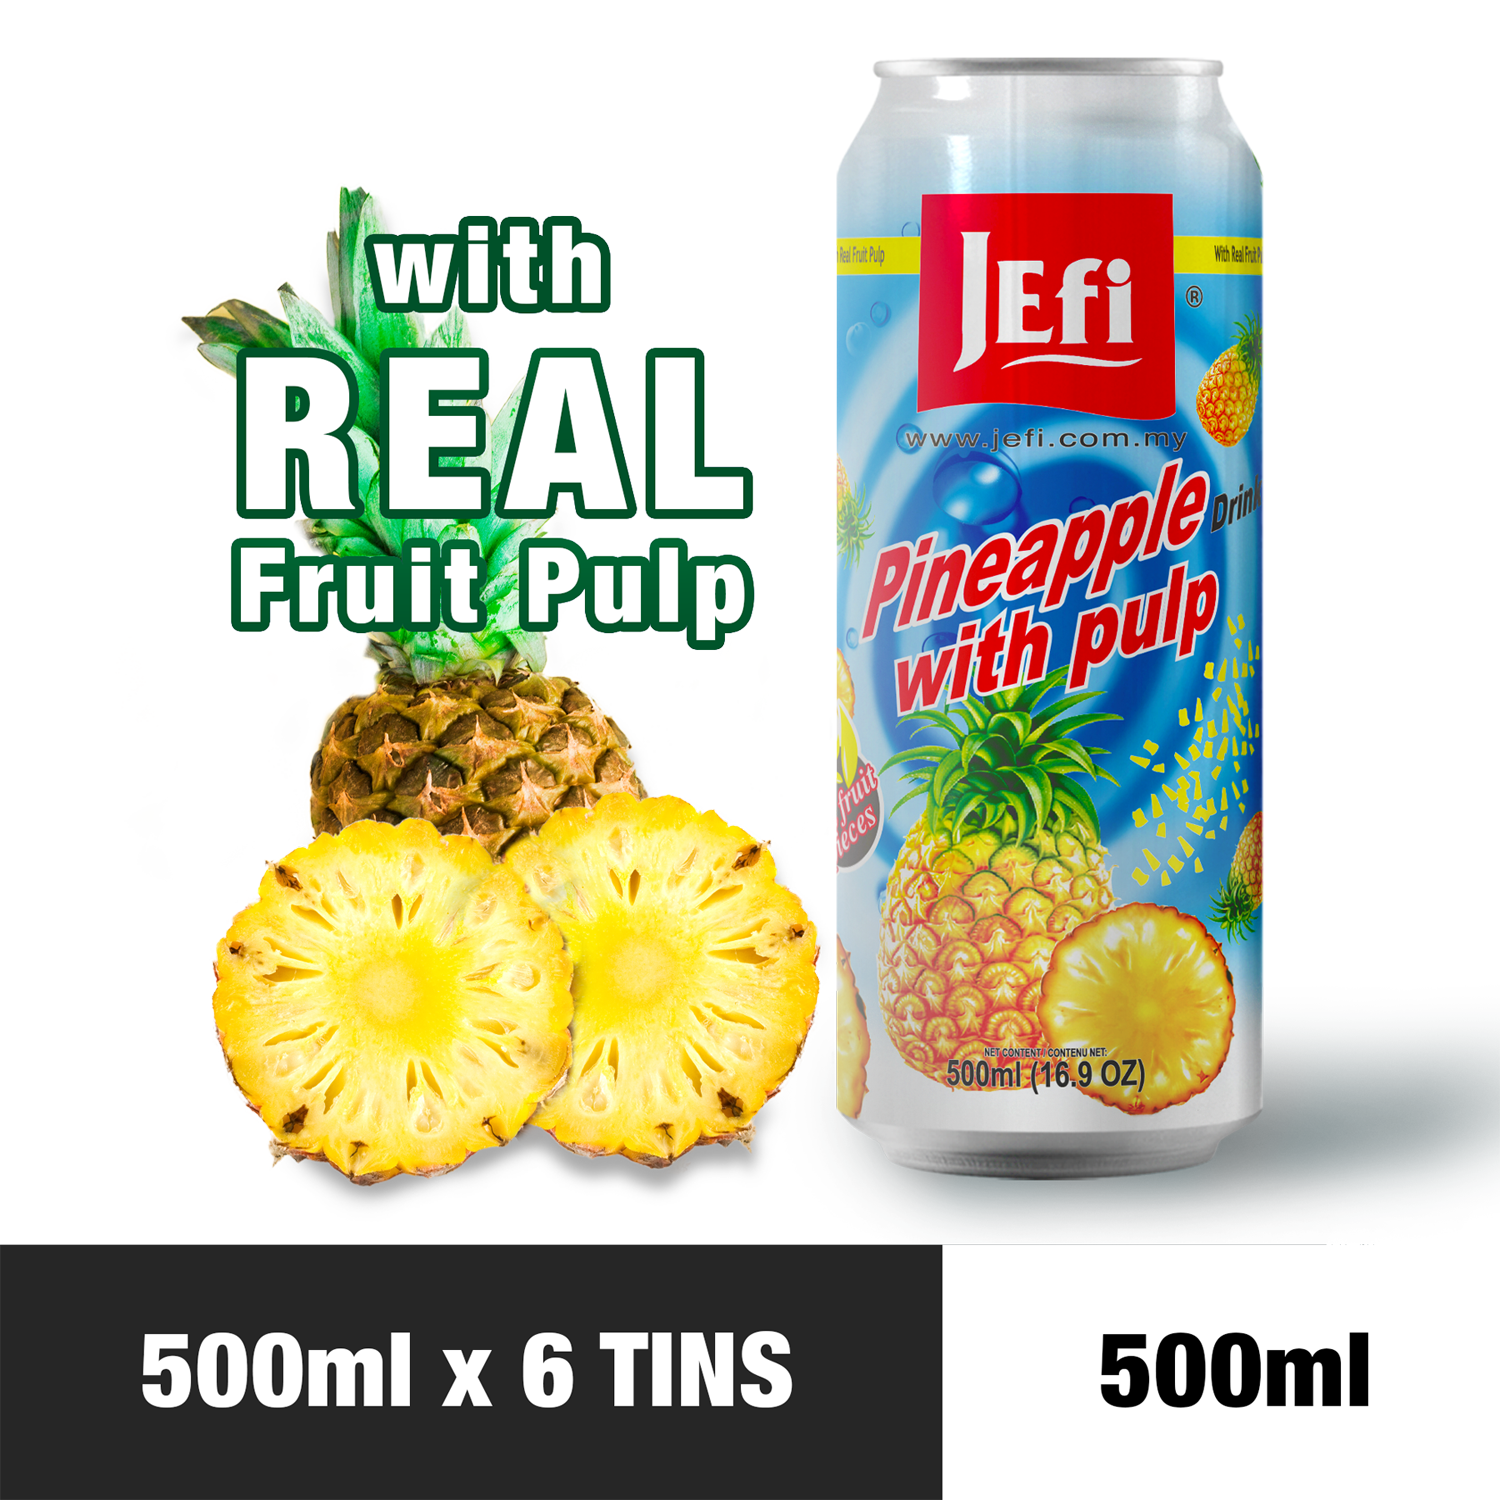 JEFI Pineapple Drink with Real Fruit Pulp (500ml x 6tins)